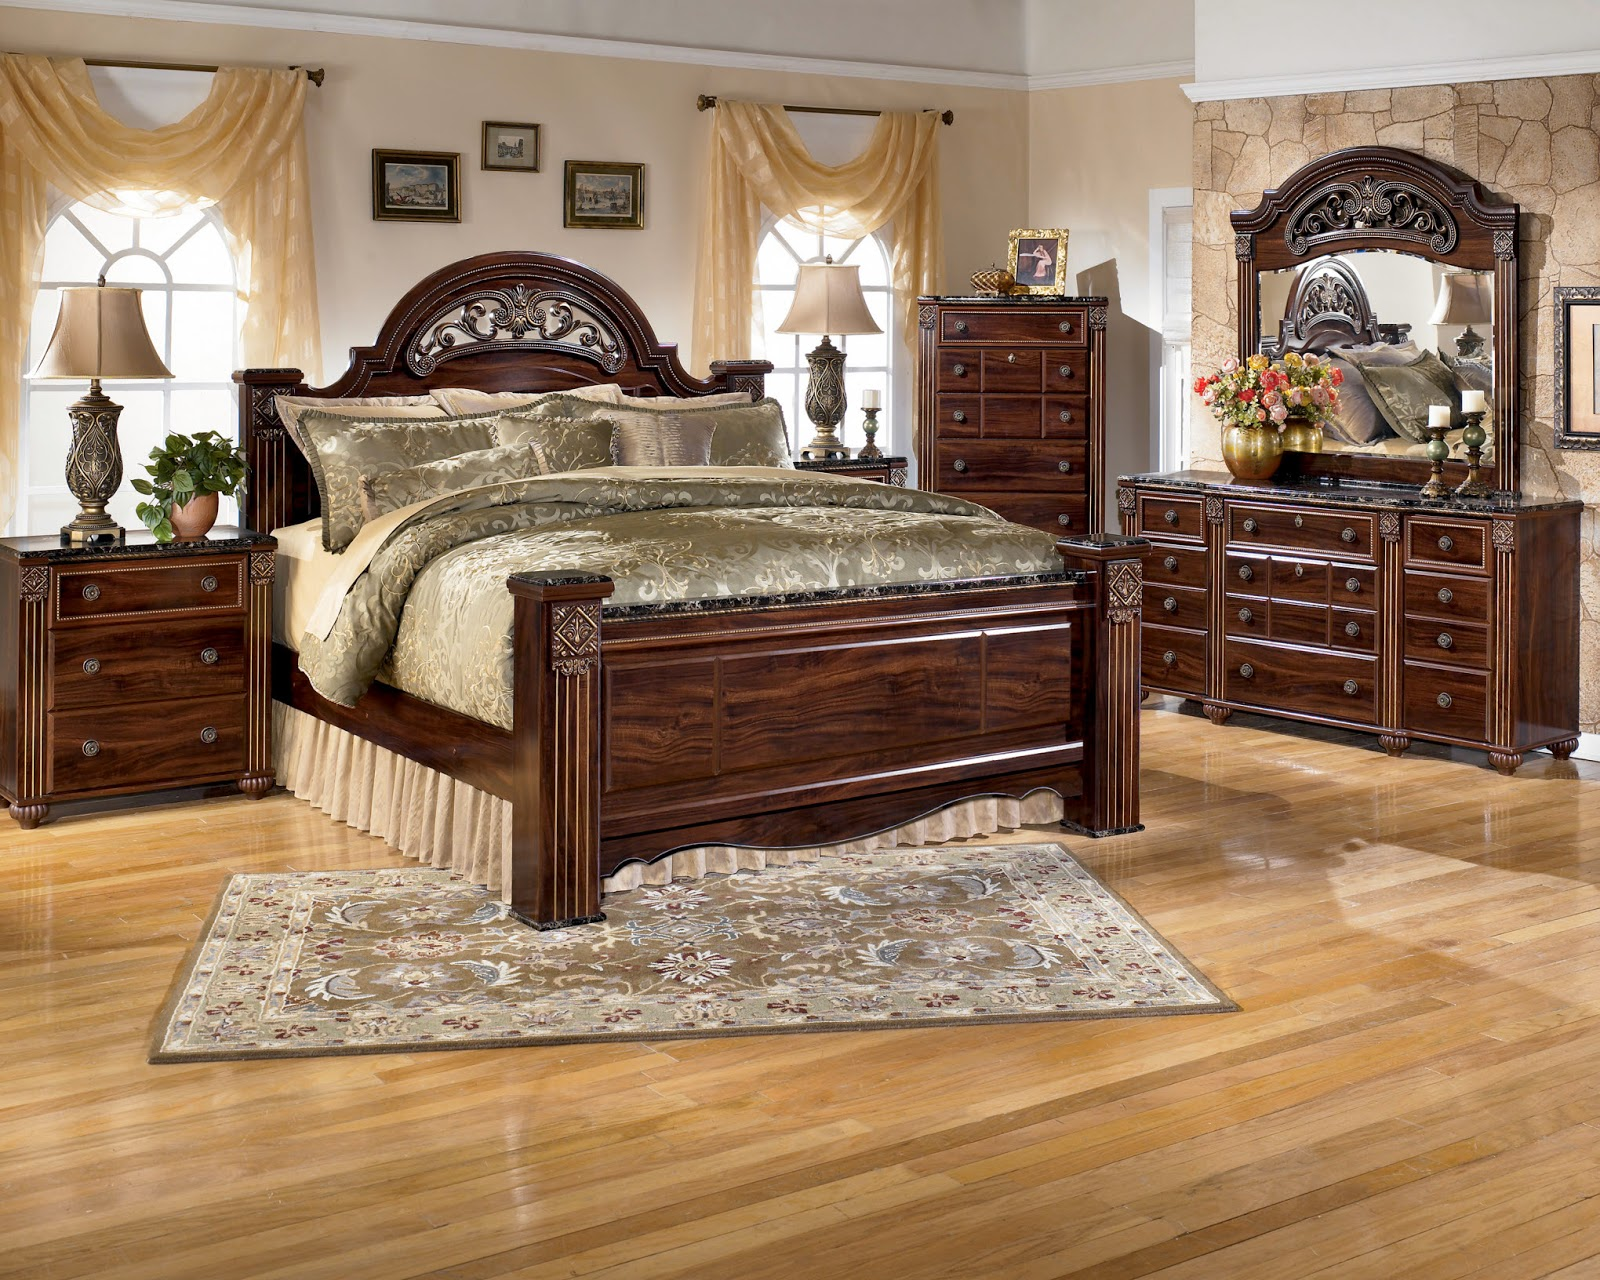 Ashley Furniture Bedroom Set Sale via 2.bp.blogspot.com